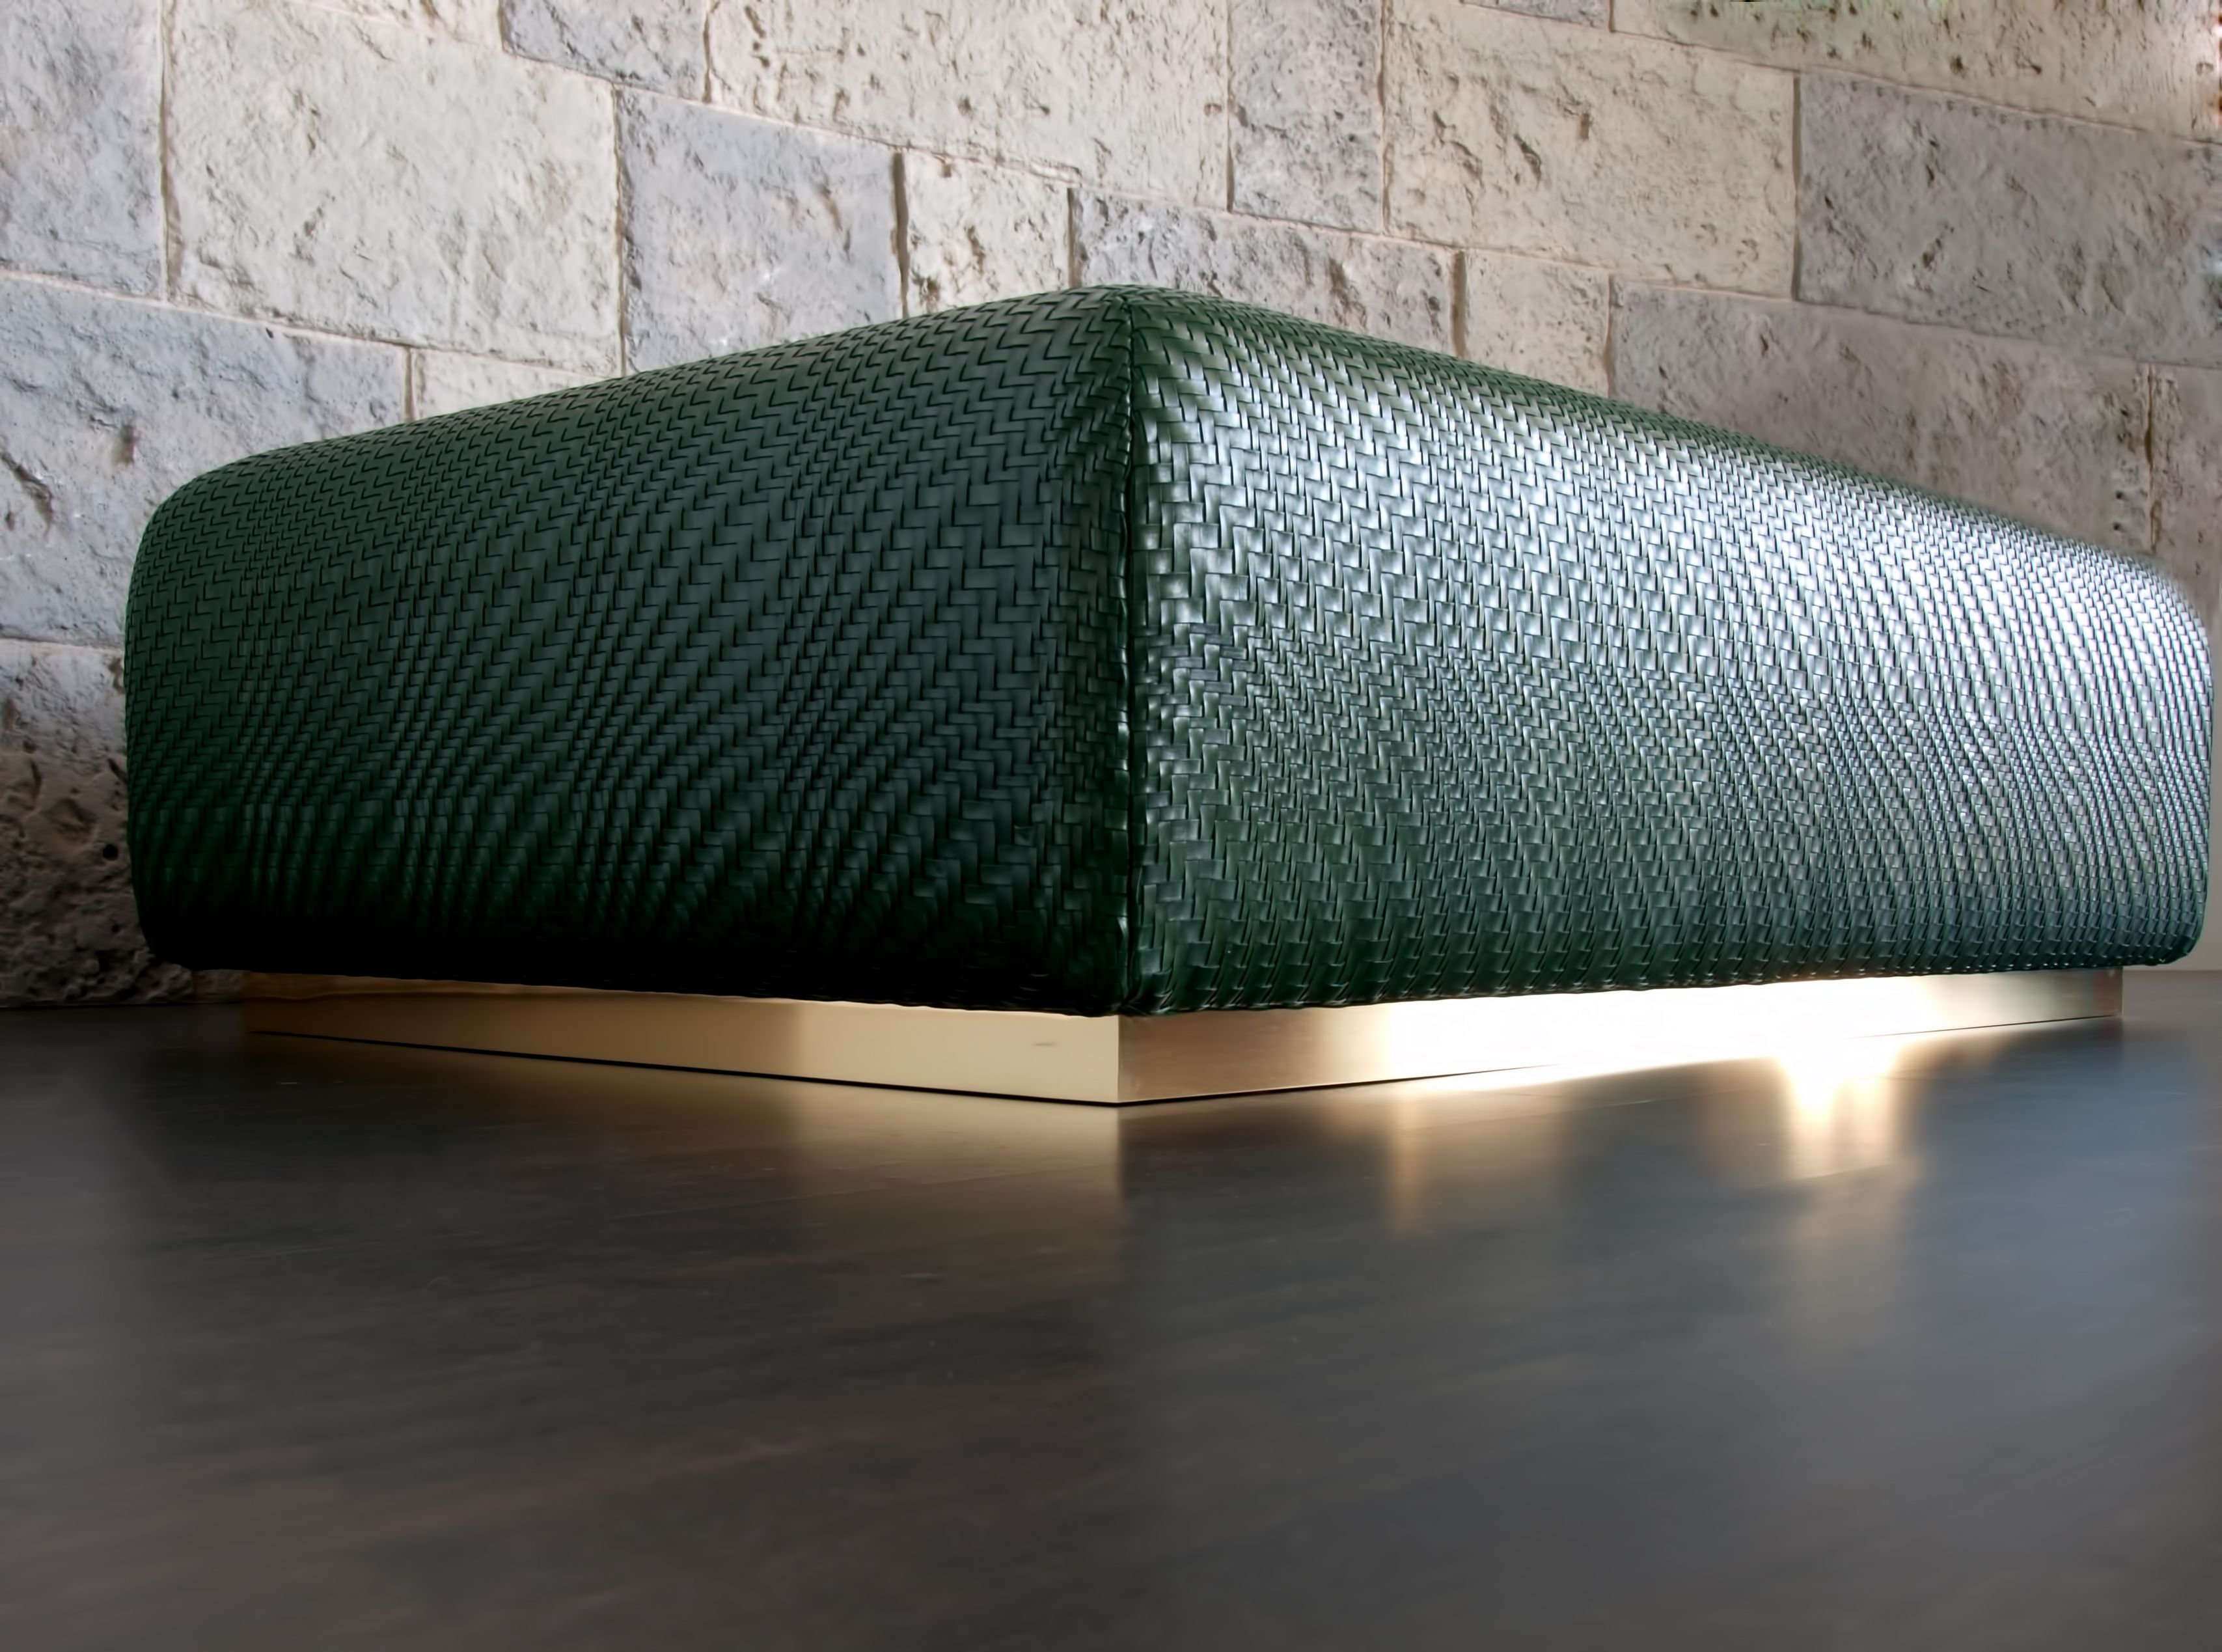 Cobblestone Woven Leather Ottoman in Bottle Green | seating | sofas ...